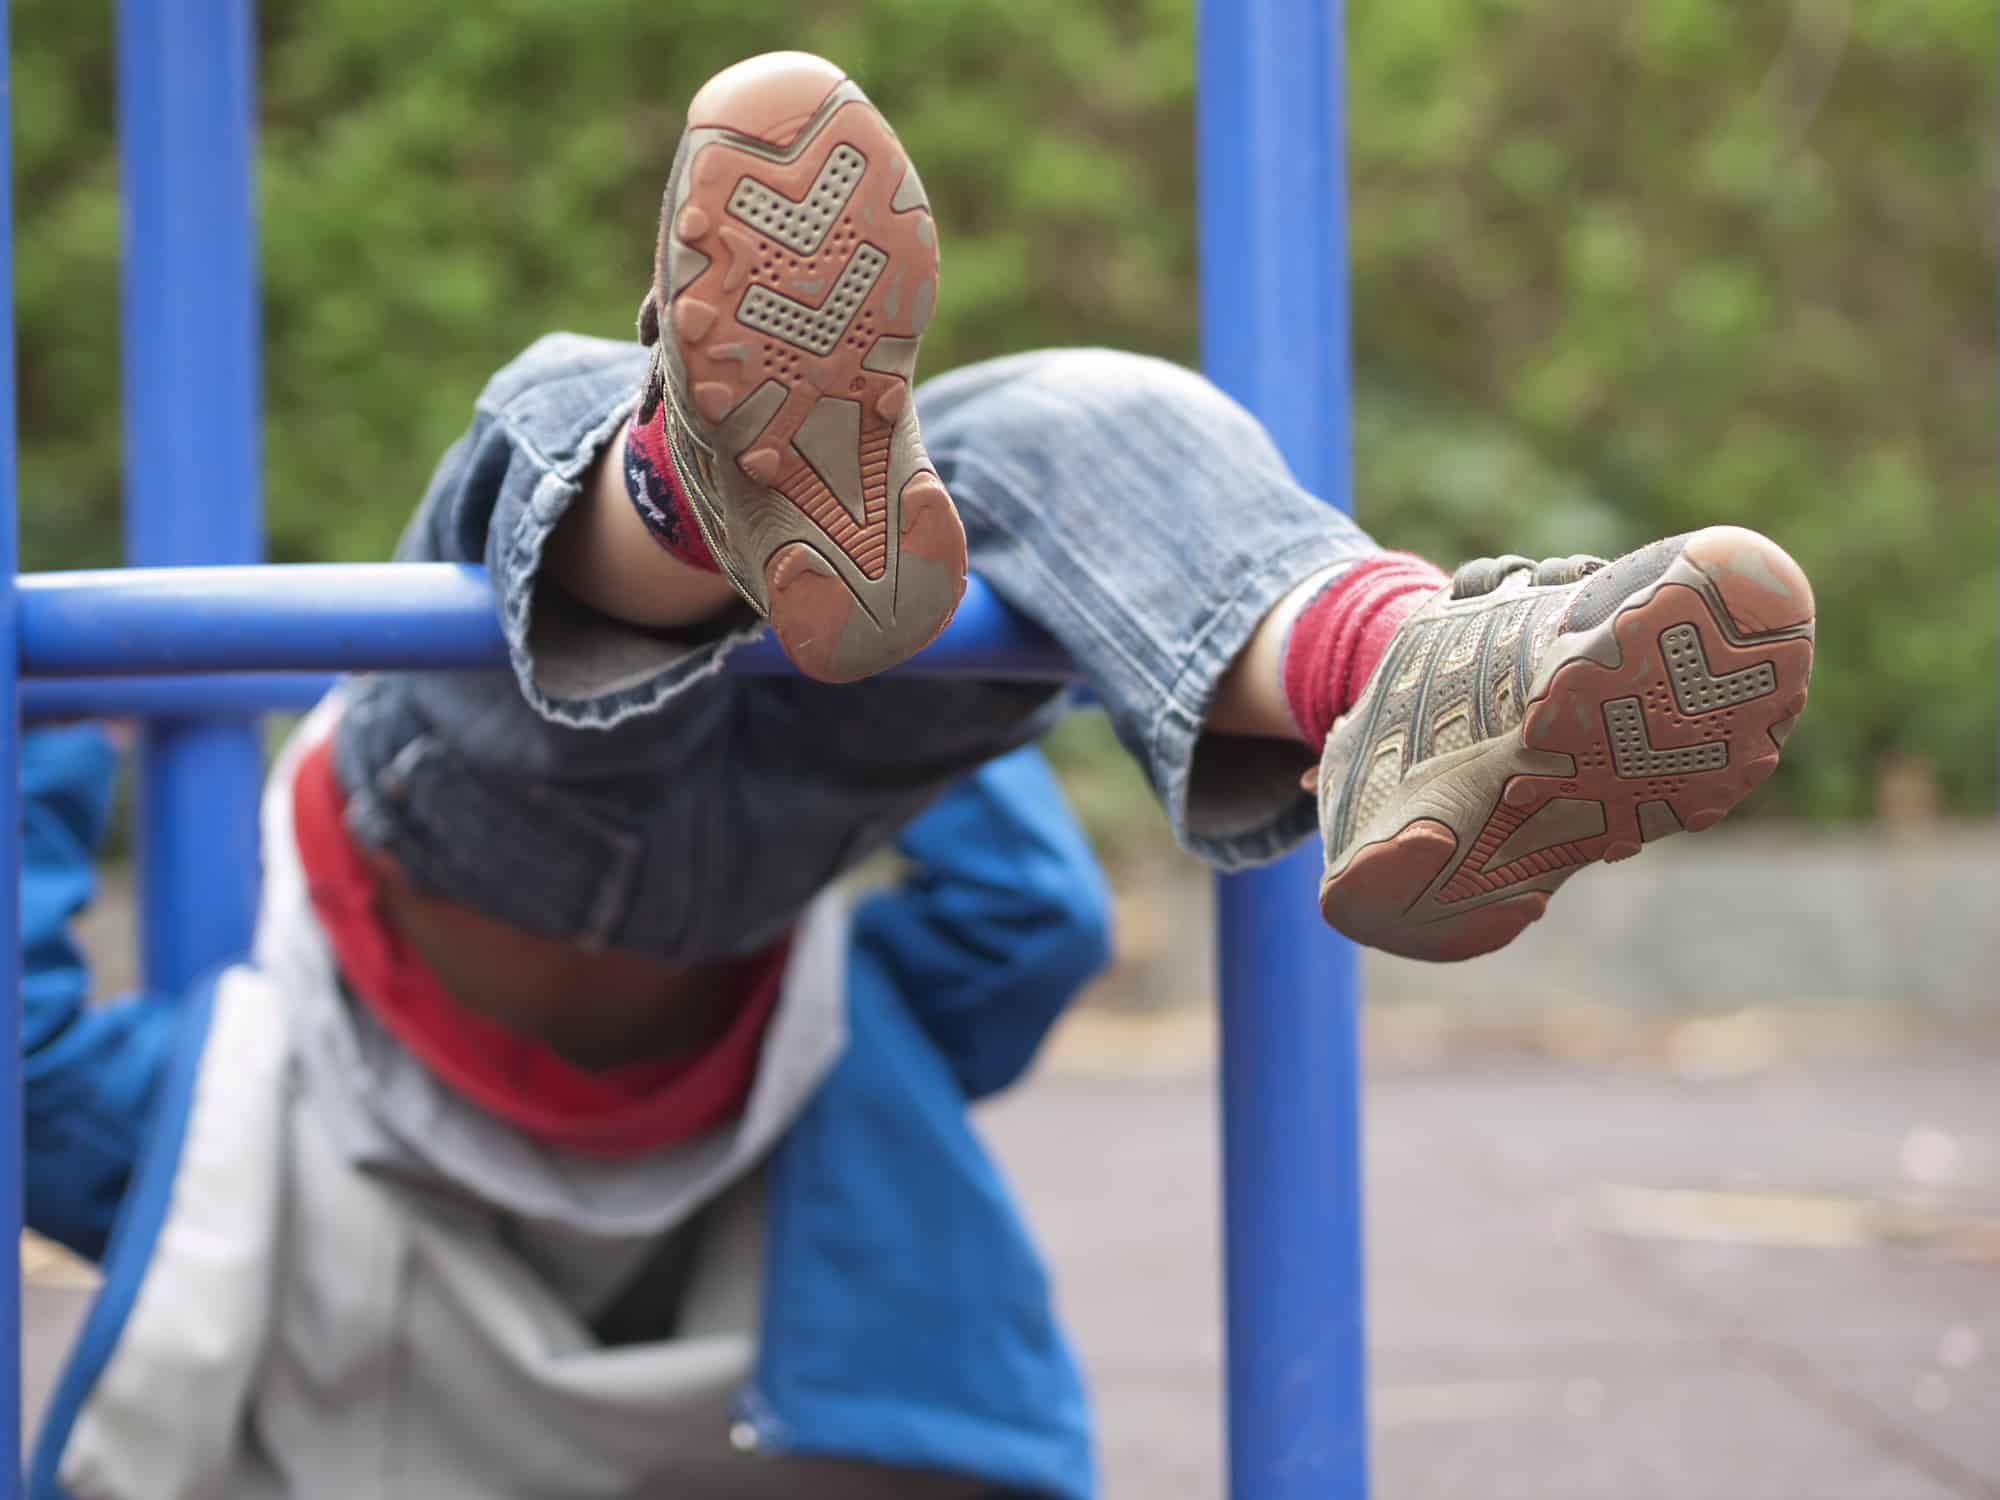 Child Hanging Upside Down In Climbing Frame Of A Playground. Focus On Feet With Shoes Only. Parts Of Climbing Frame Visible.